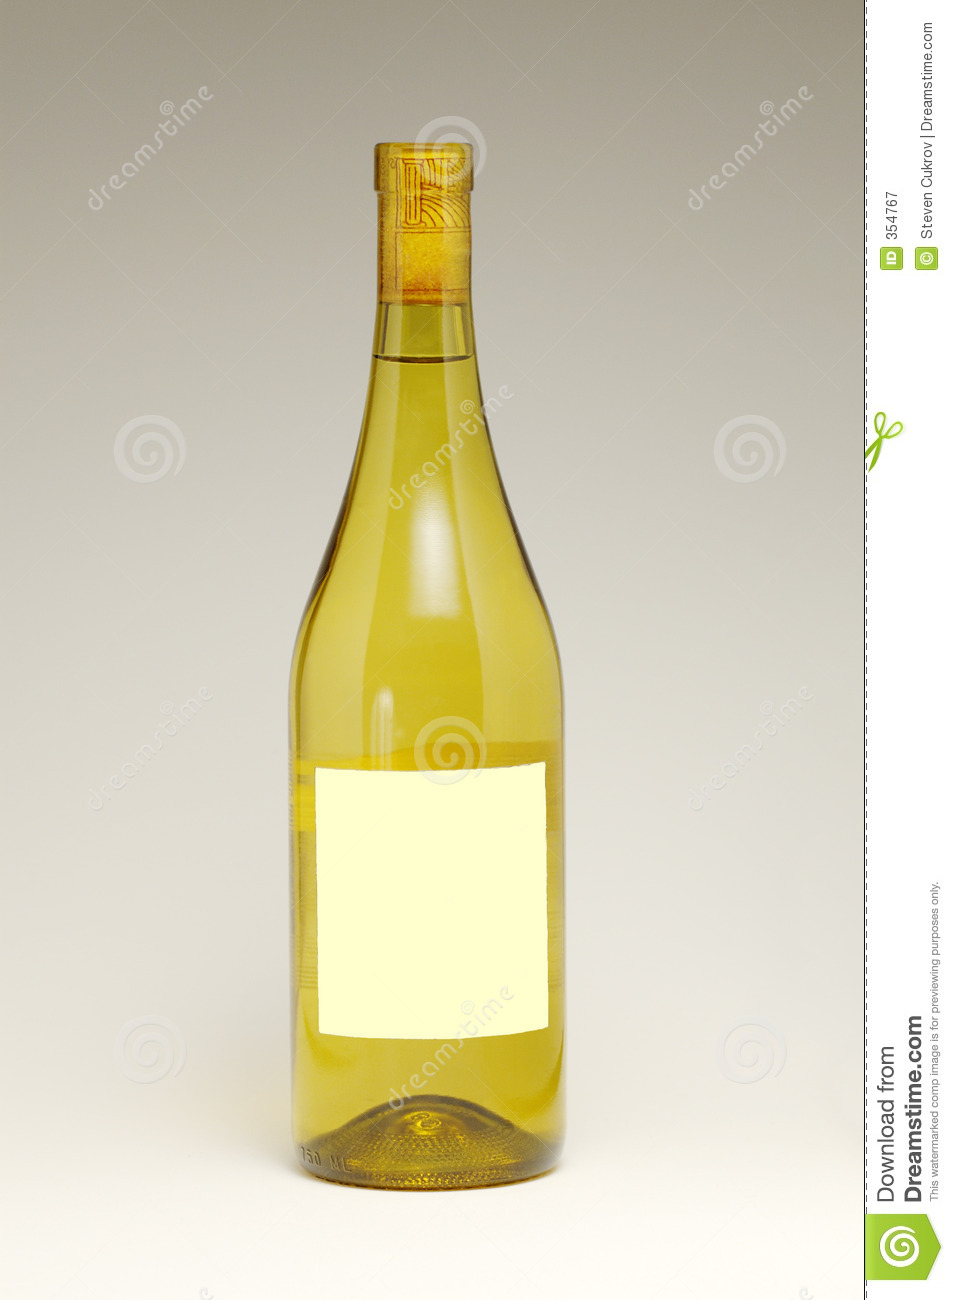 Wine Bottle With Blank Label Stock Image - Image: 354767